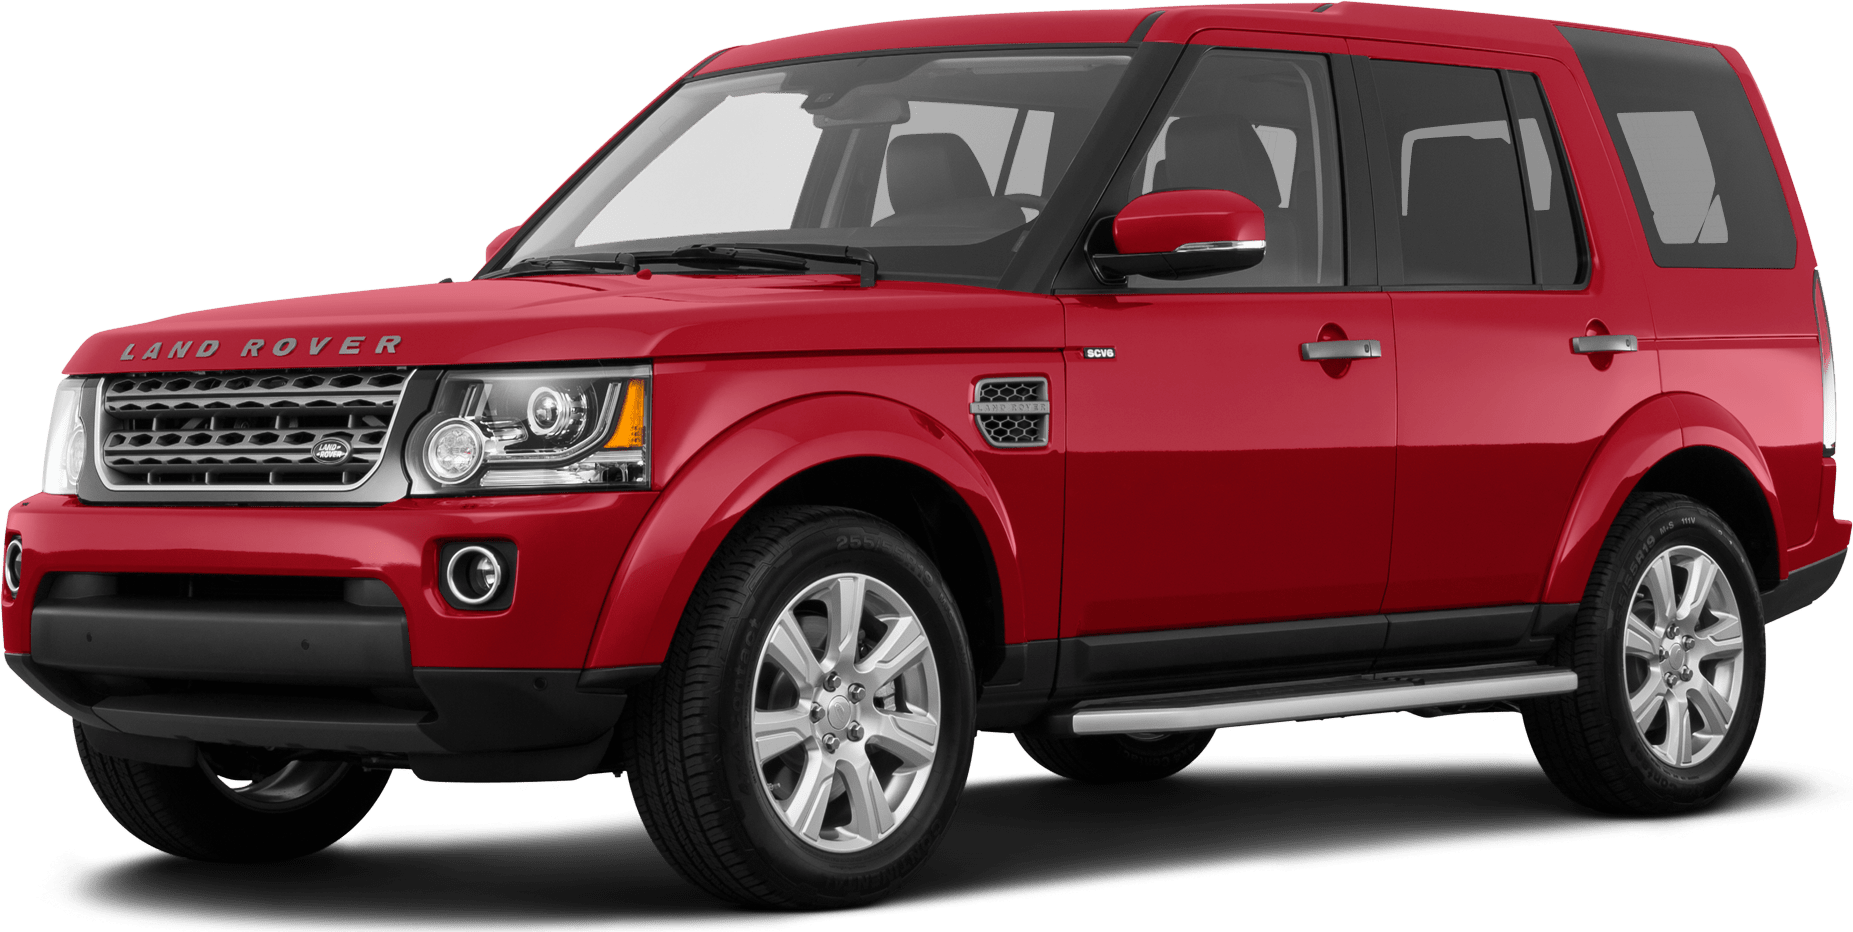 Range Rover Buyer Los Angeles